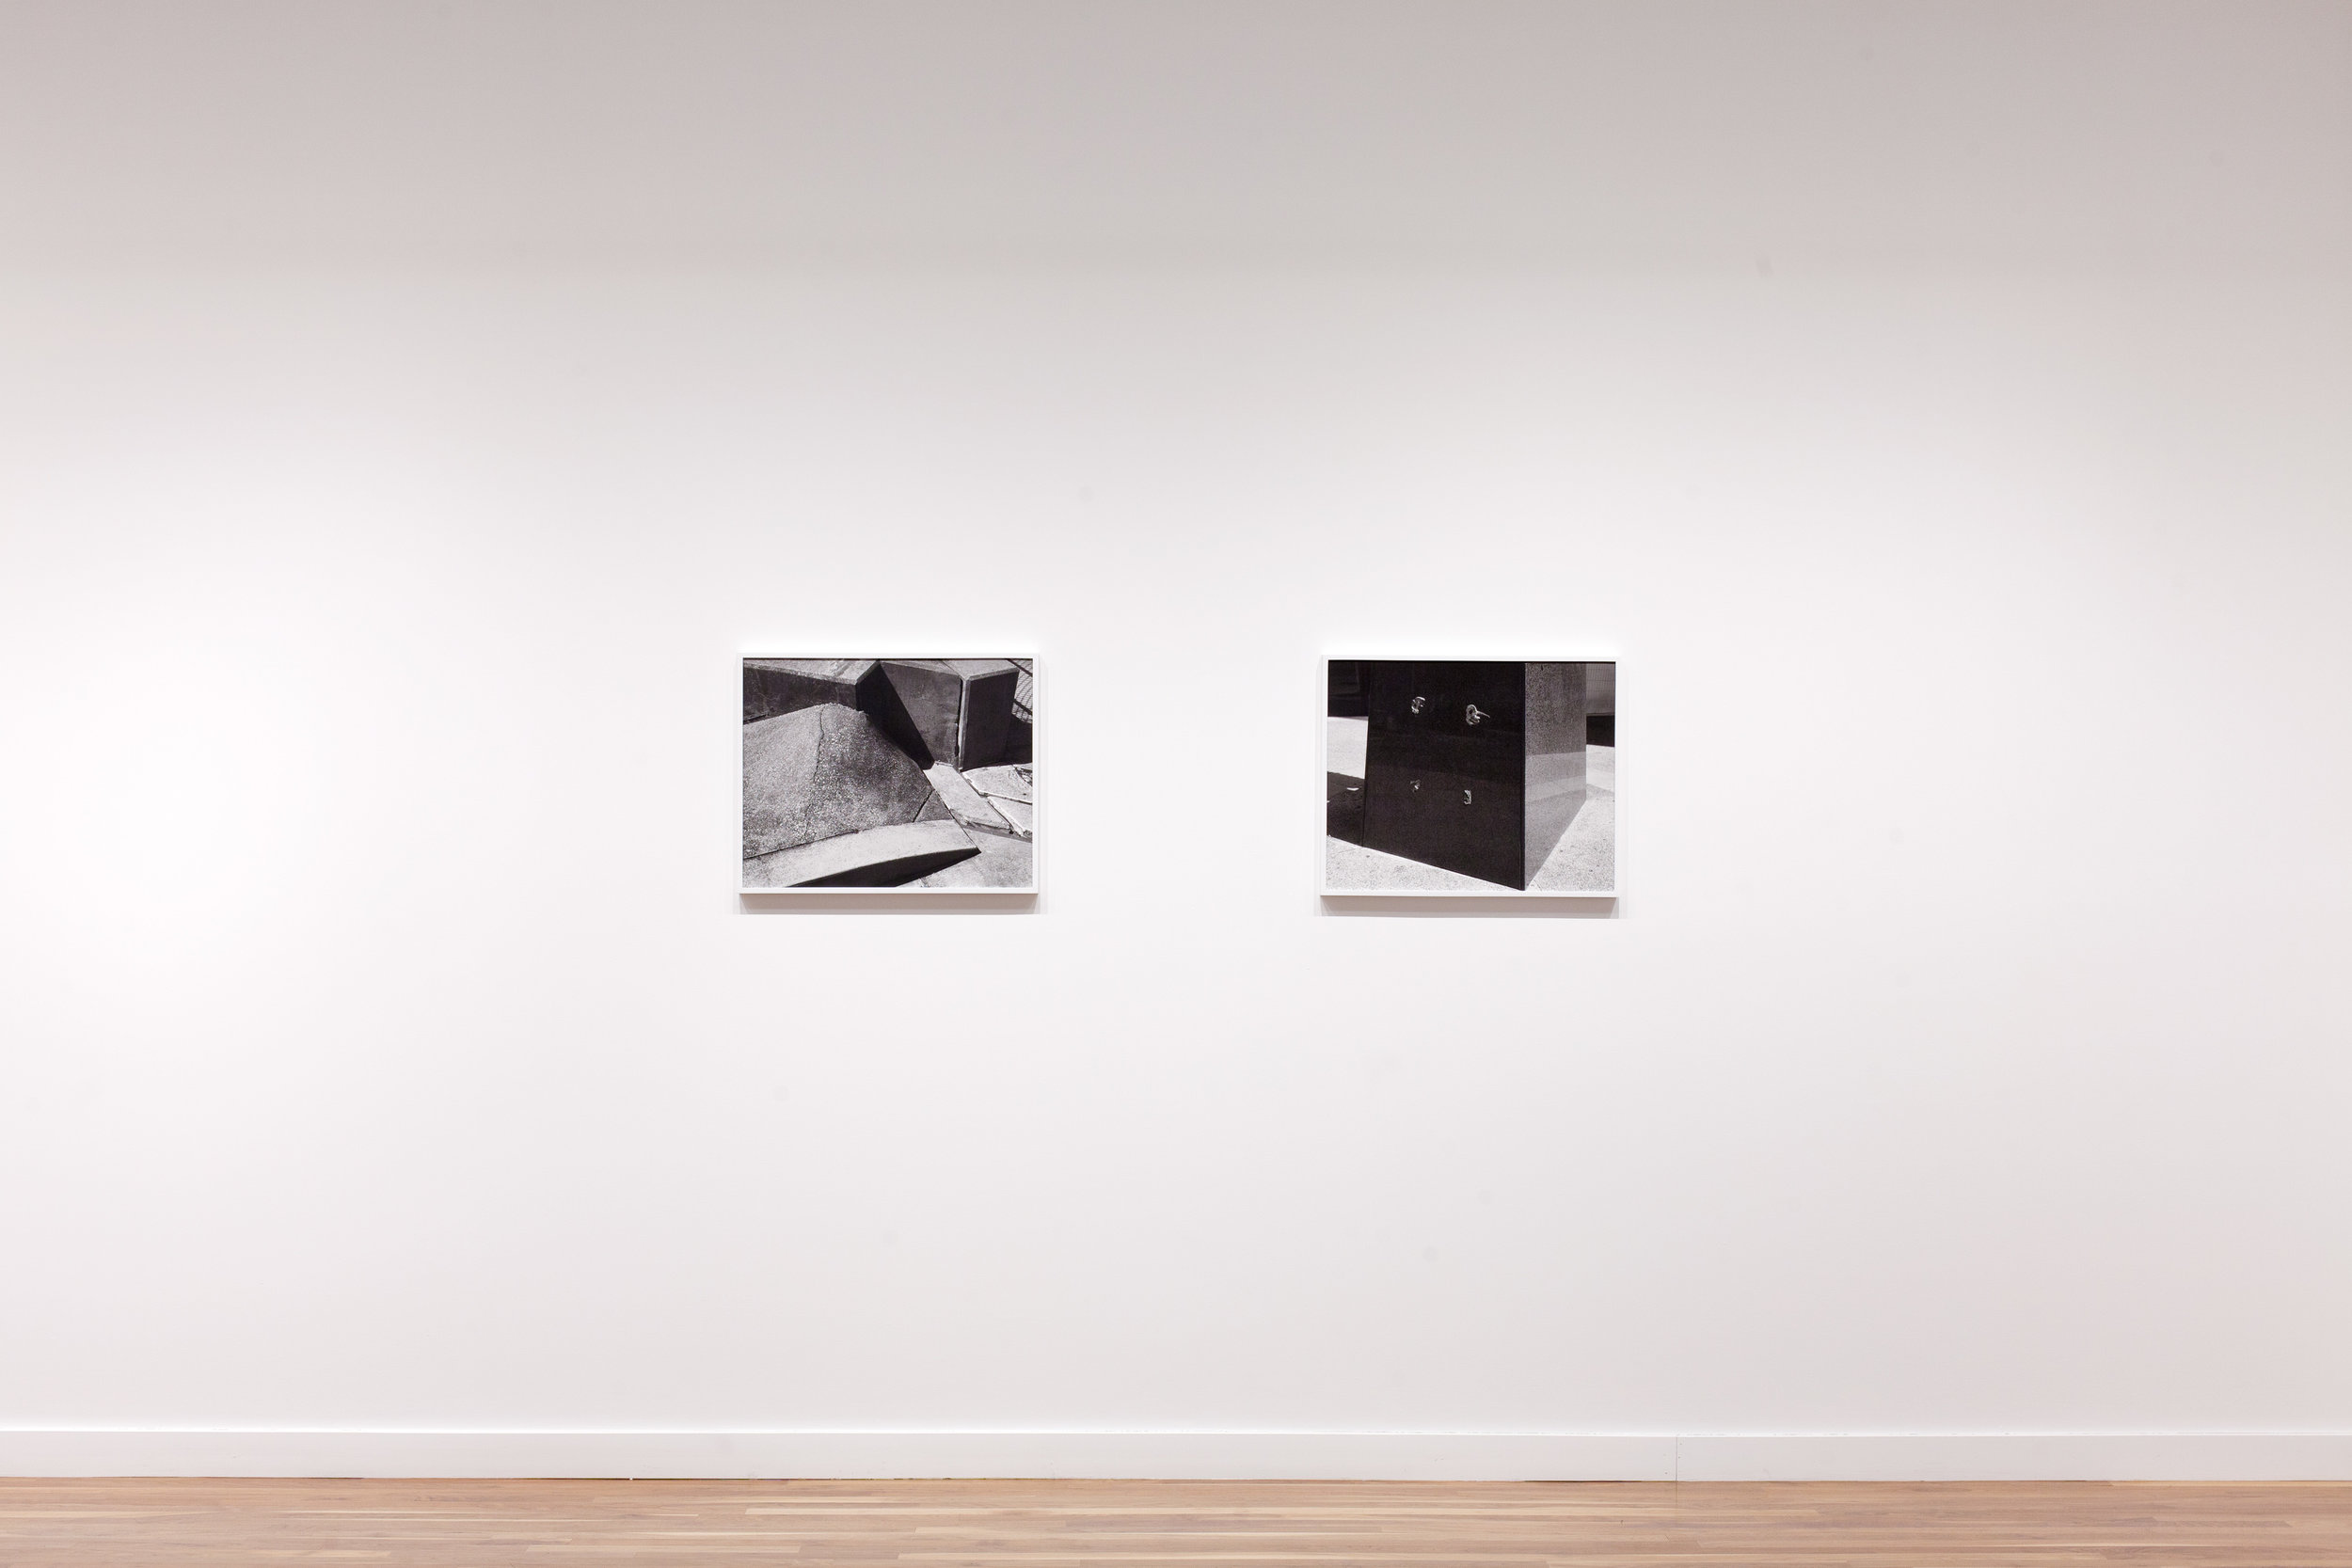 """Installation view. L to R:  """"Separation""""  and  """"Monument.""""  Both works 20x25, Archival pigment prints in painted wood frames, 2015."""